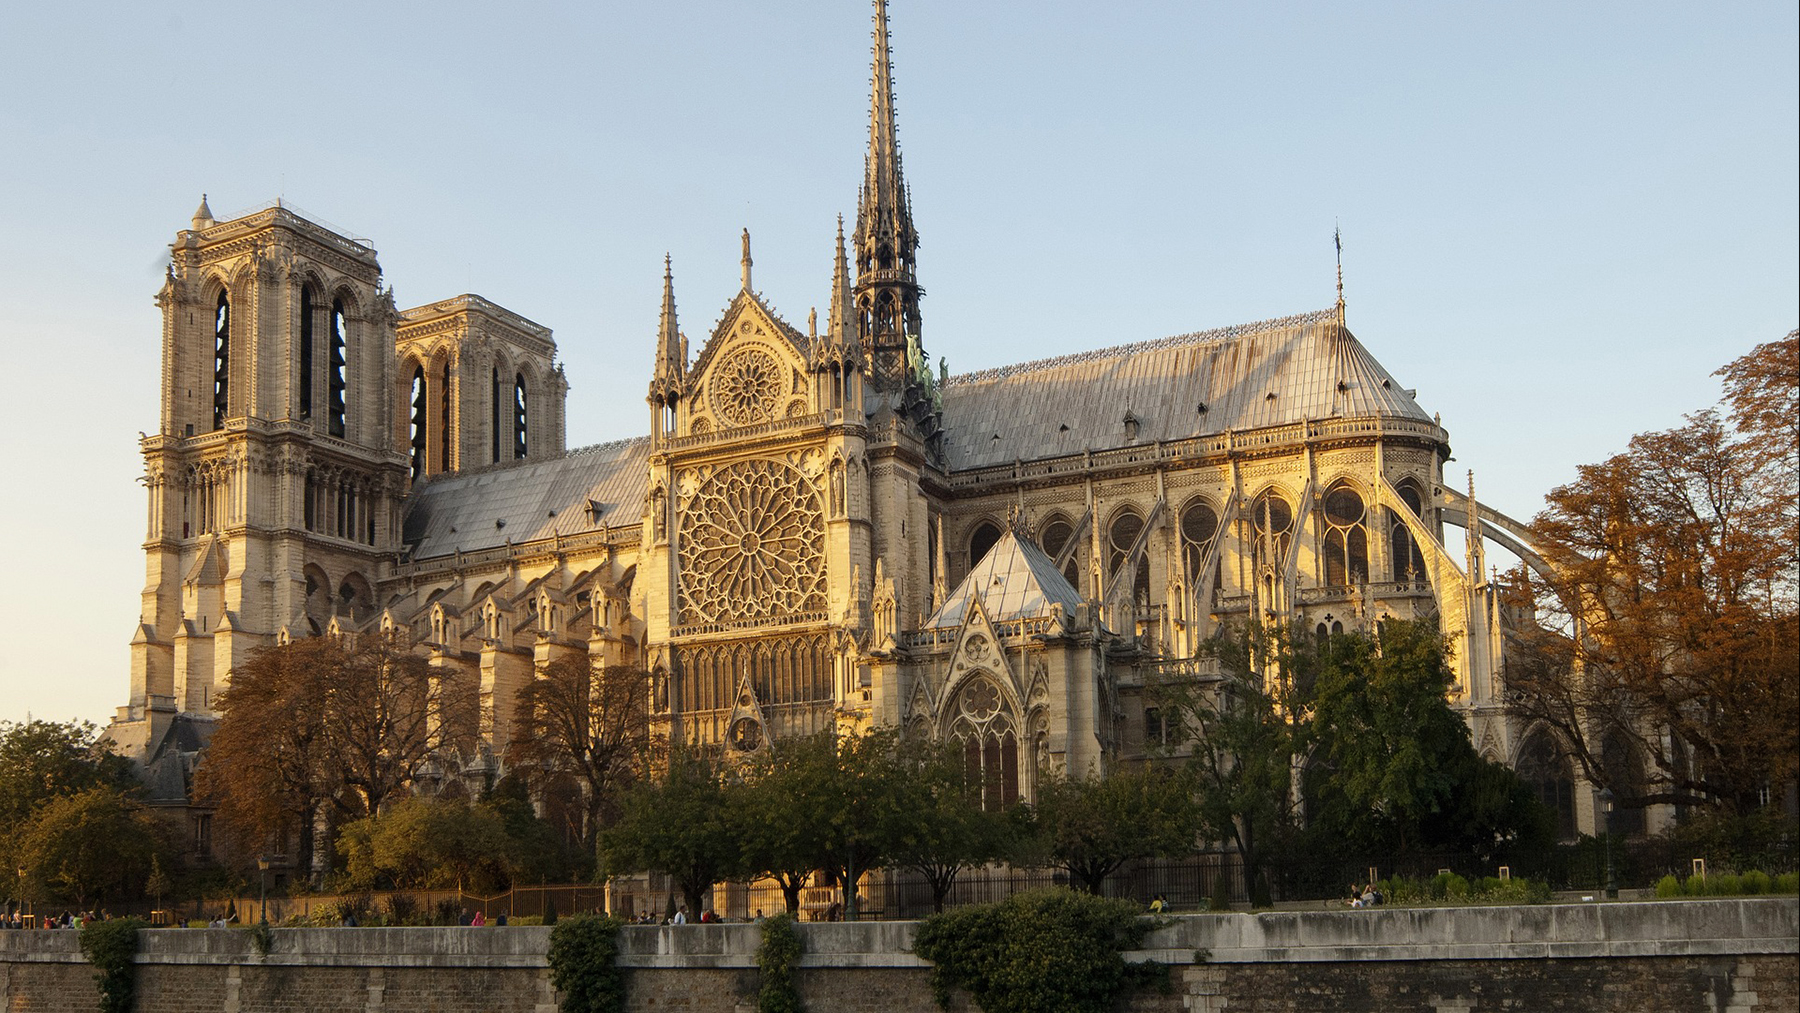 Notre Dame Cathedral. Photo by Corina Benesch